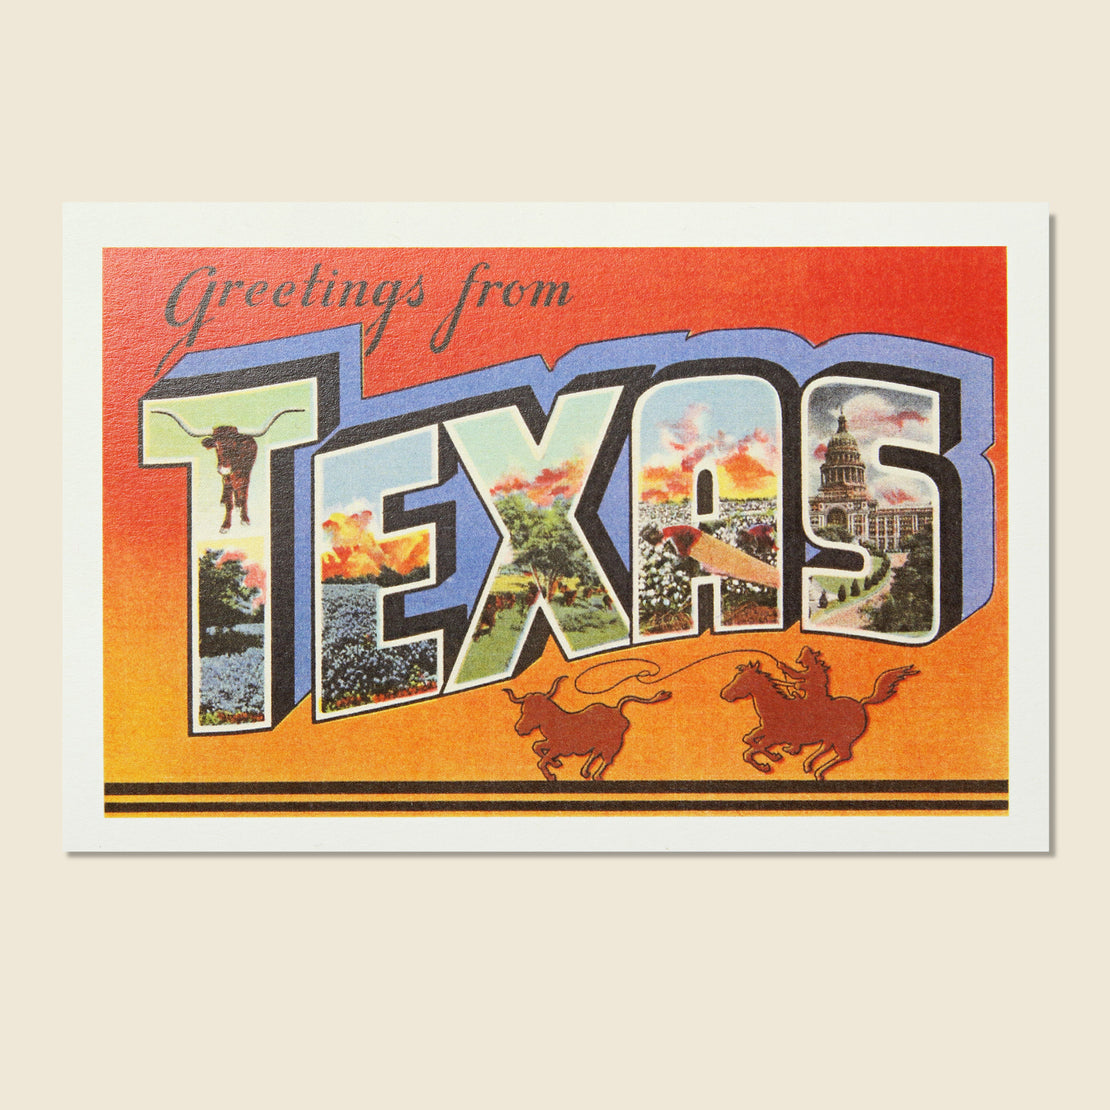 Found Image Postcard - Greetings from Texas